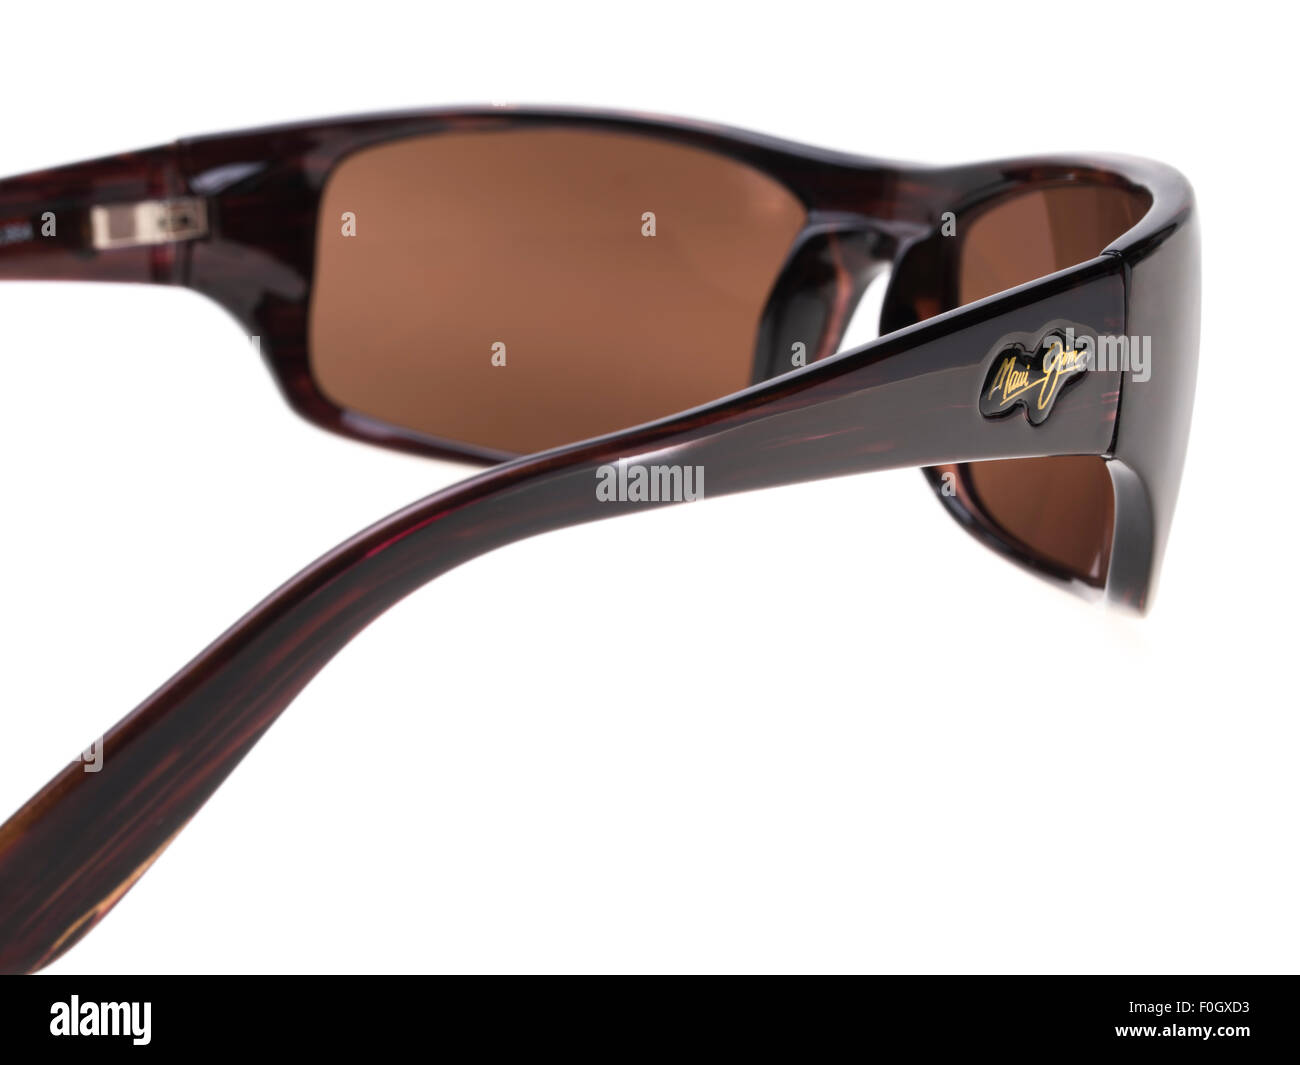 34e5e2eb4751 Maui Jim Stock Photos   Maui Jim Stock Images - Alamy